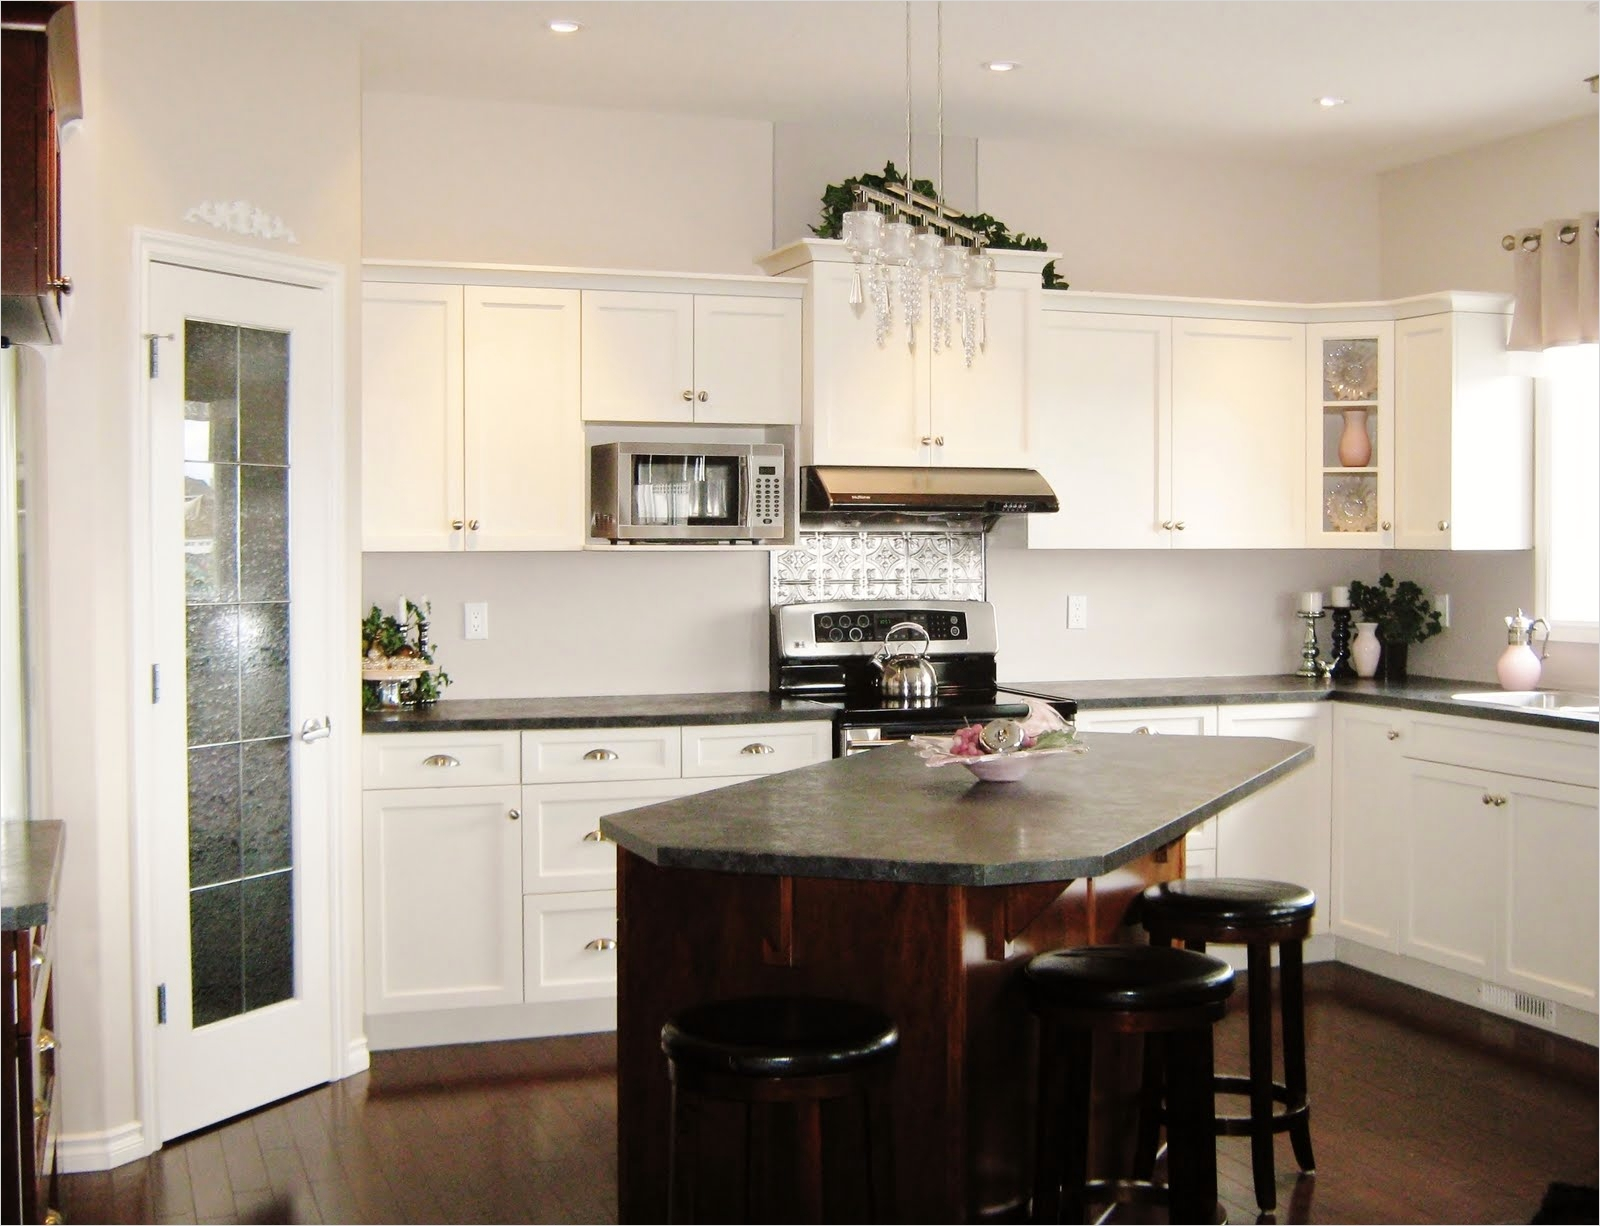 44 Perfect Ideas Small Kitchen Designs with islands 24 Kitchen island Ideas for Small Kitchens – Small Kitchen island Ideas Uk Kitchen island 4